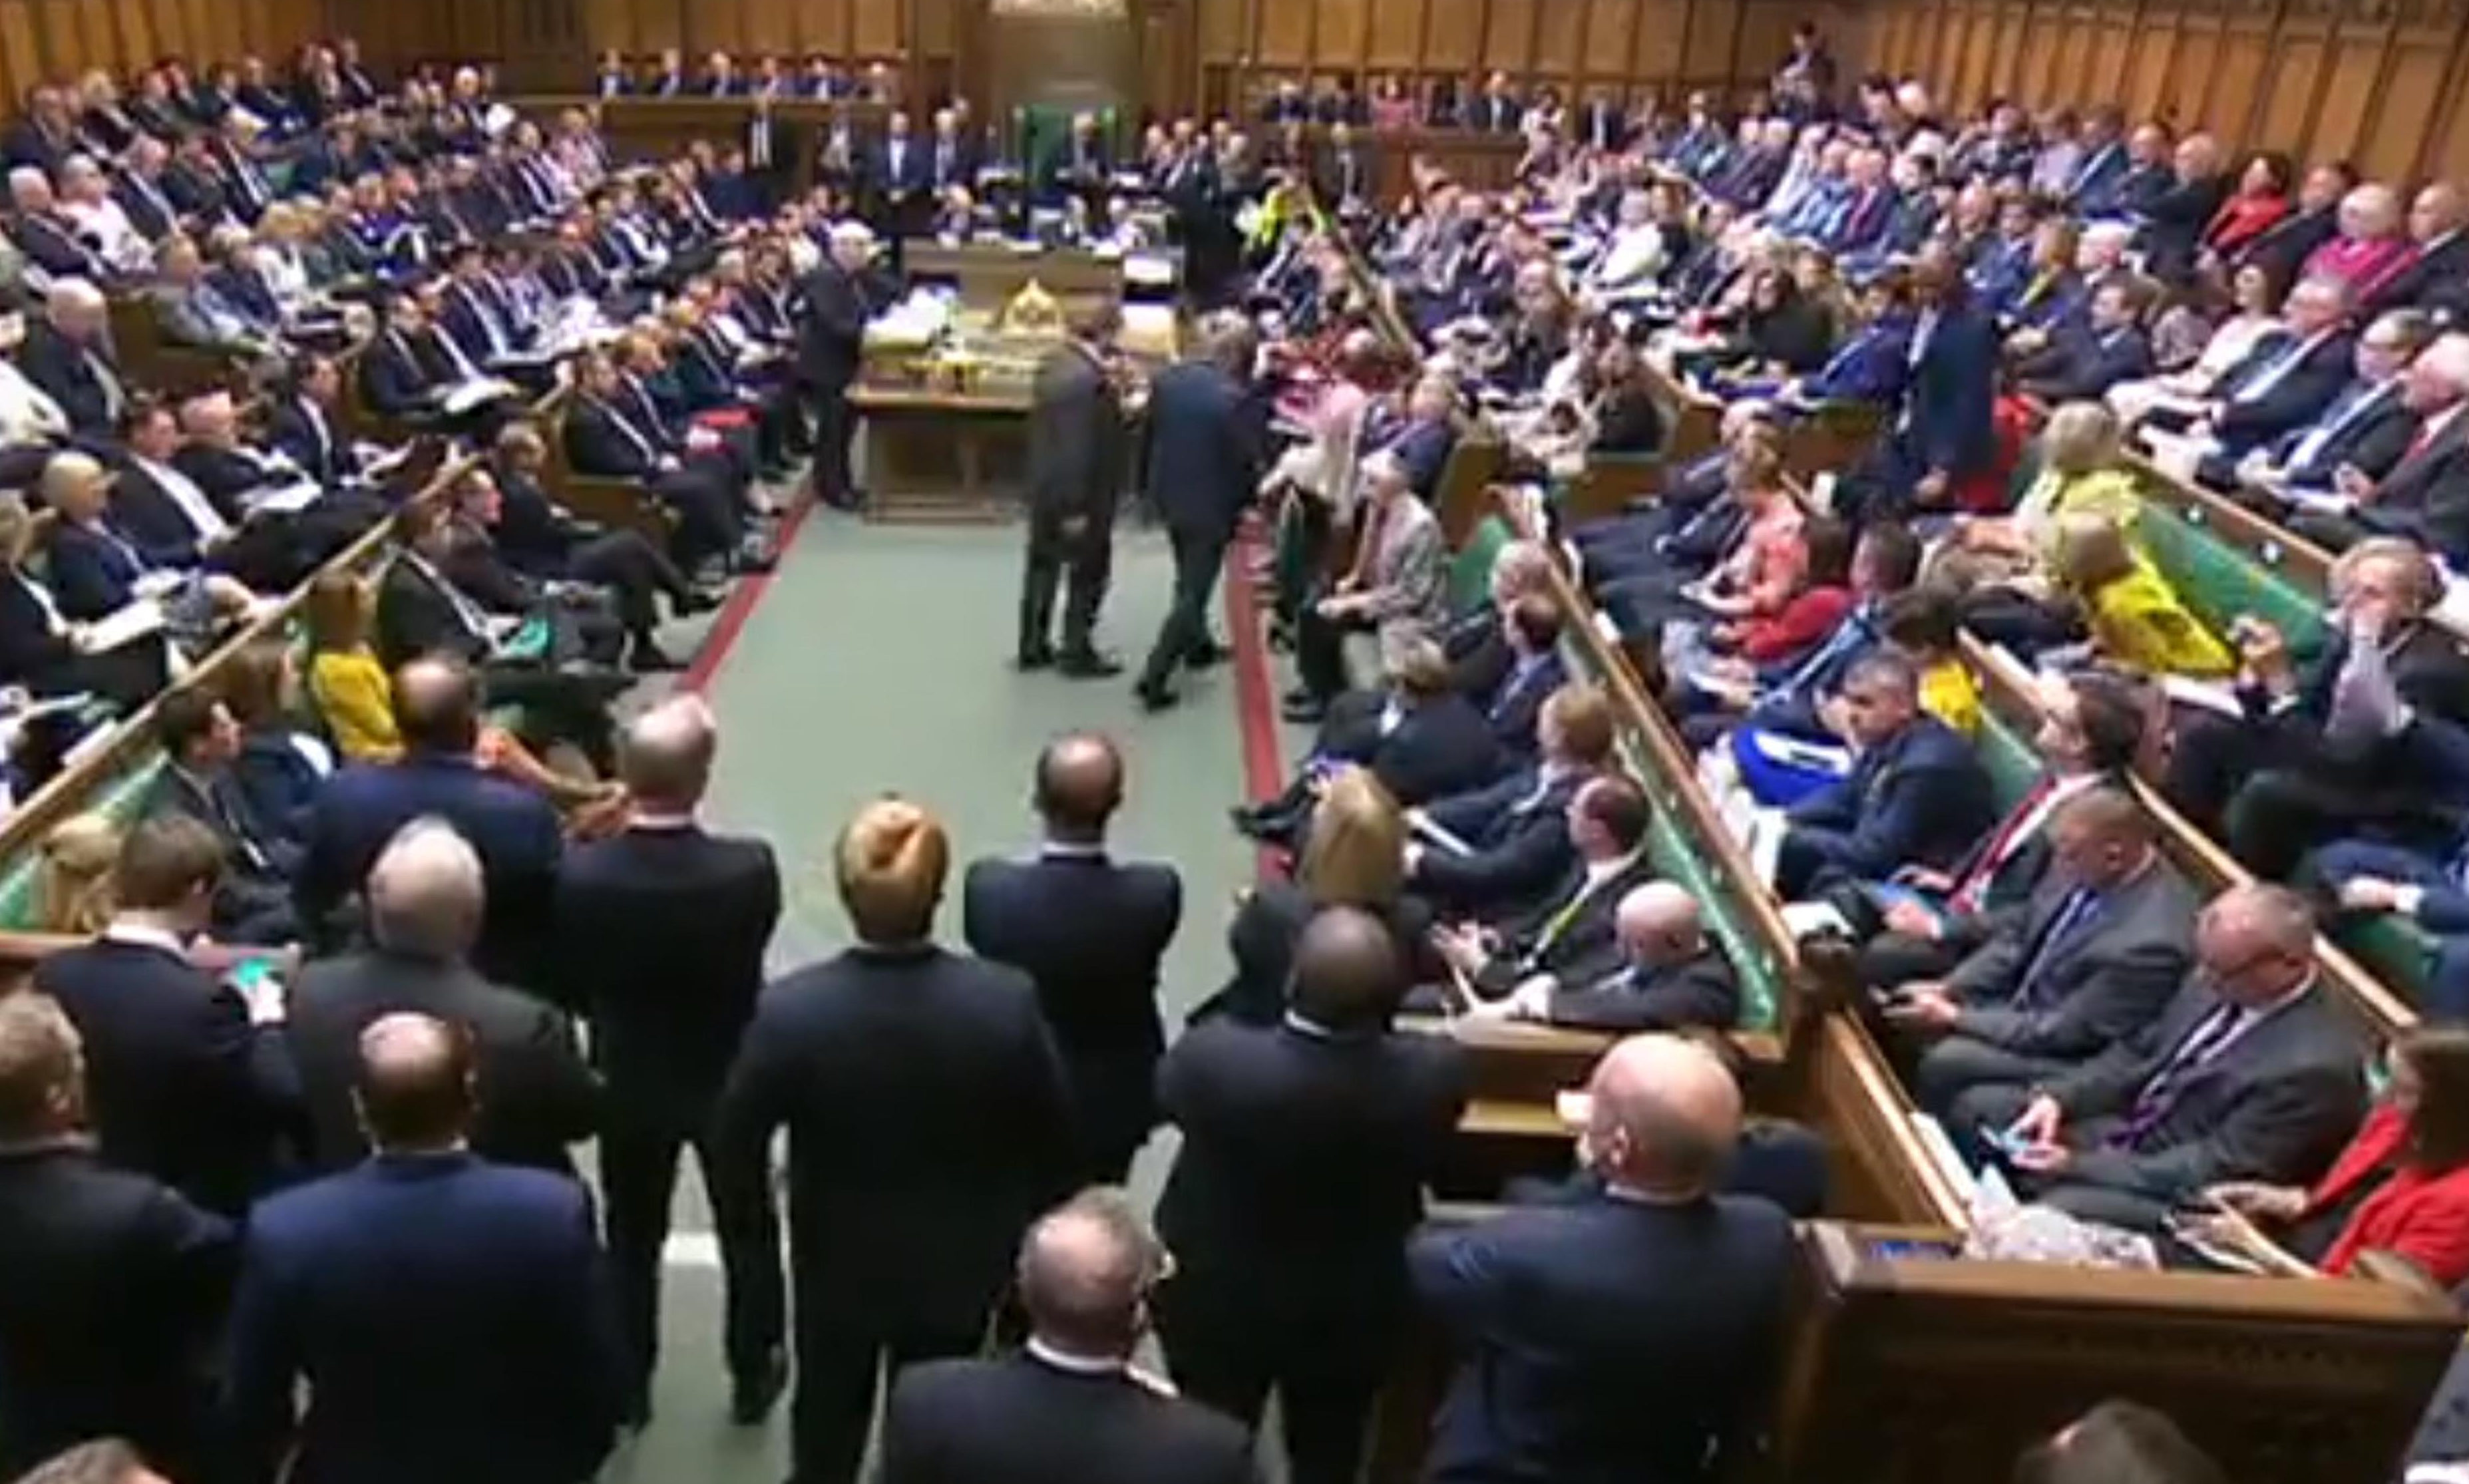 Phillip Lee (centre standing right) takes his seat among Liberal Democrat MPs as Prime Minister Boris Johnson makes a statement to MPs in the House of Commons, London, on the G7 Summit in Biarritz.